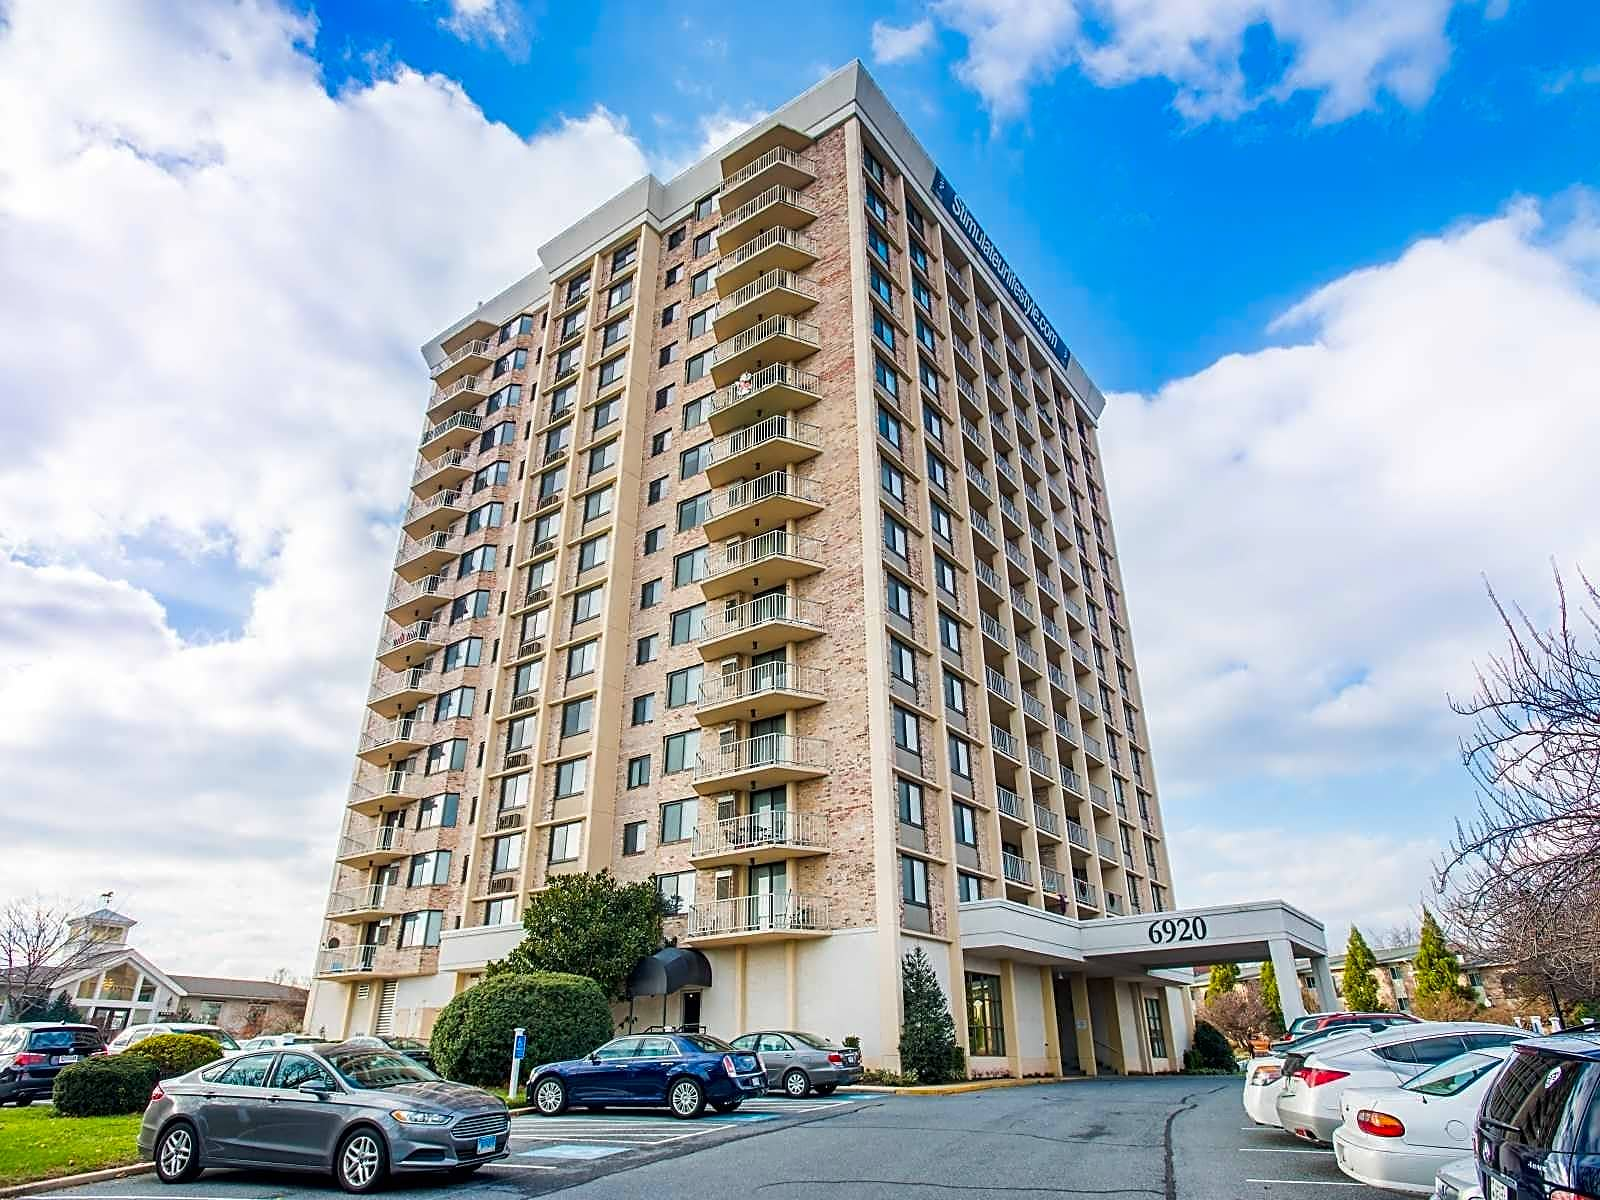 Apartments For Rent in Towson MD | Zillow